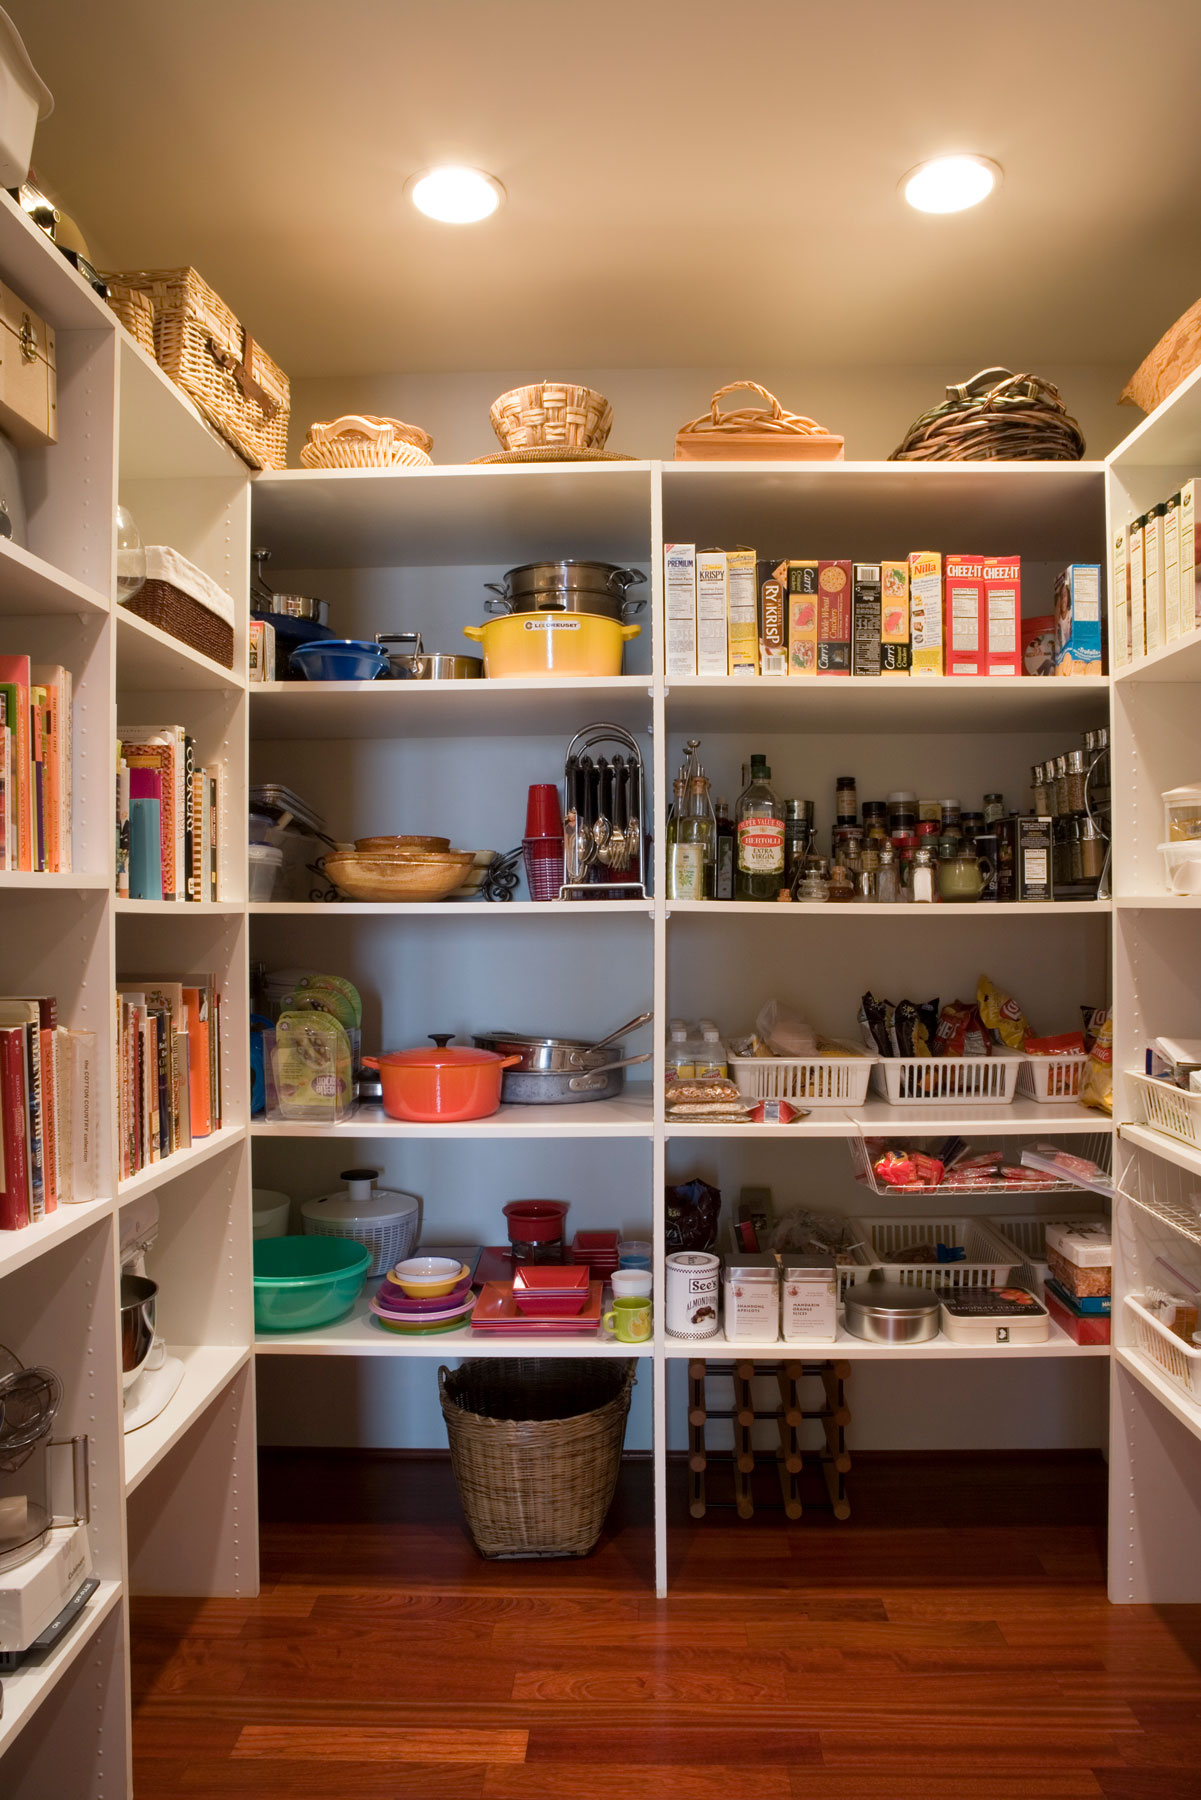 A very organized kitchen pantry filled with all the essentials.